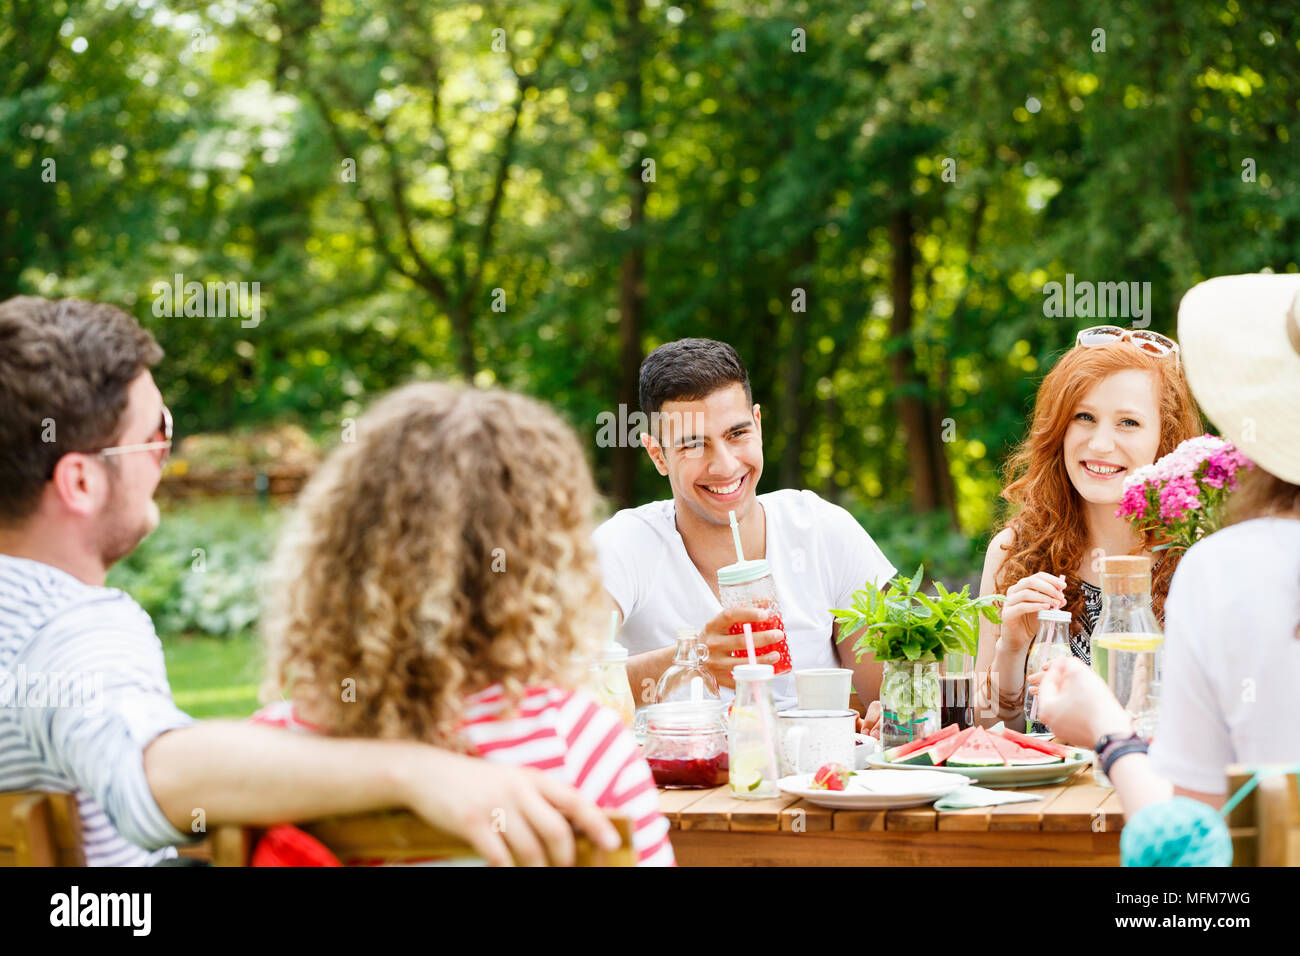 Young people laughing, eating and talking on a sunny day in the garden - Stock Image